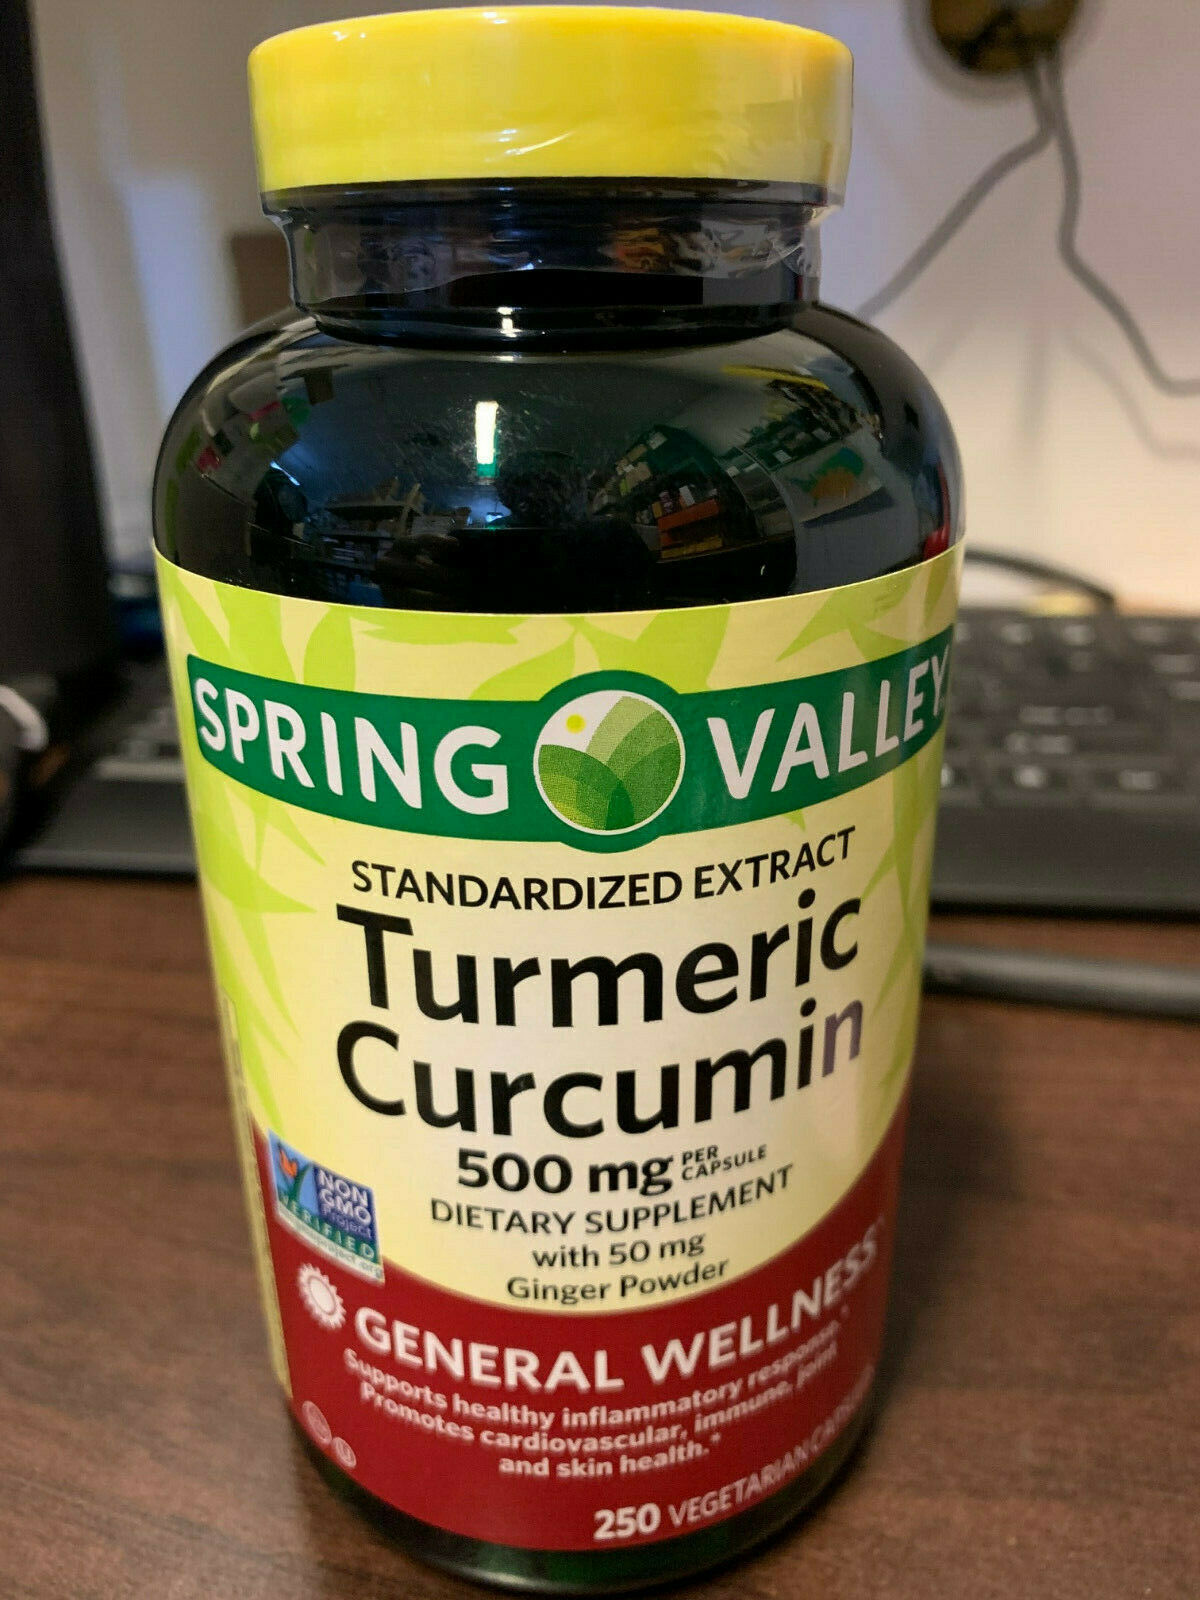 Spring Valley Turmeric Curcumin 500mg with 50 mg Ginger Powd